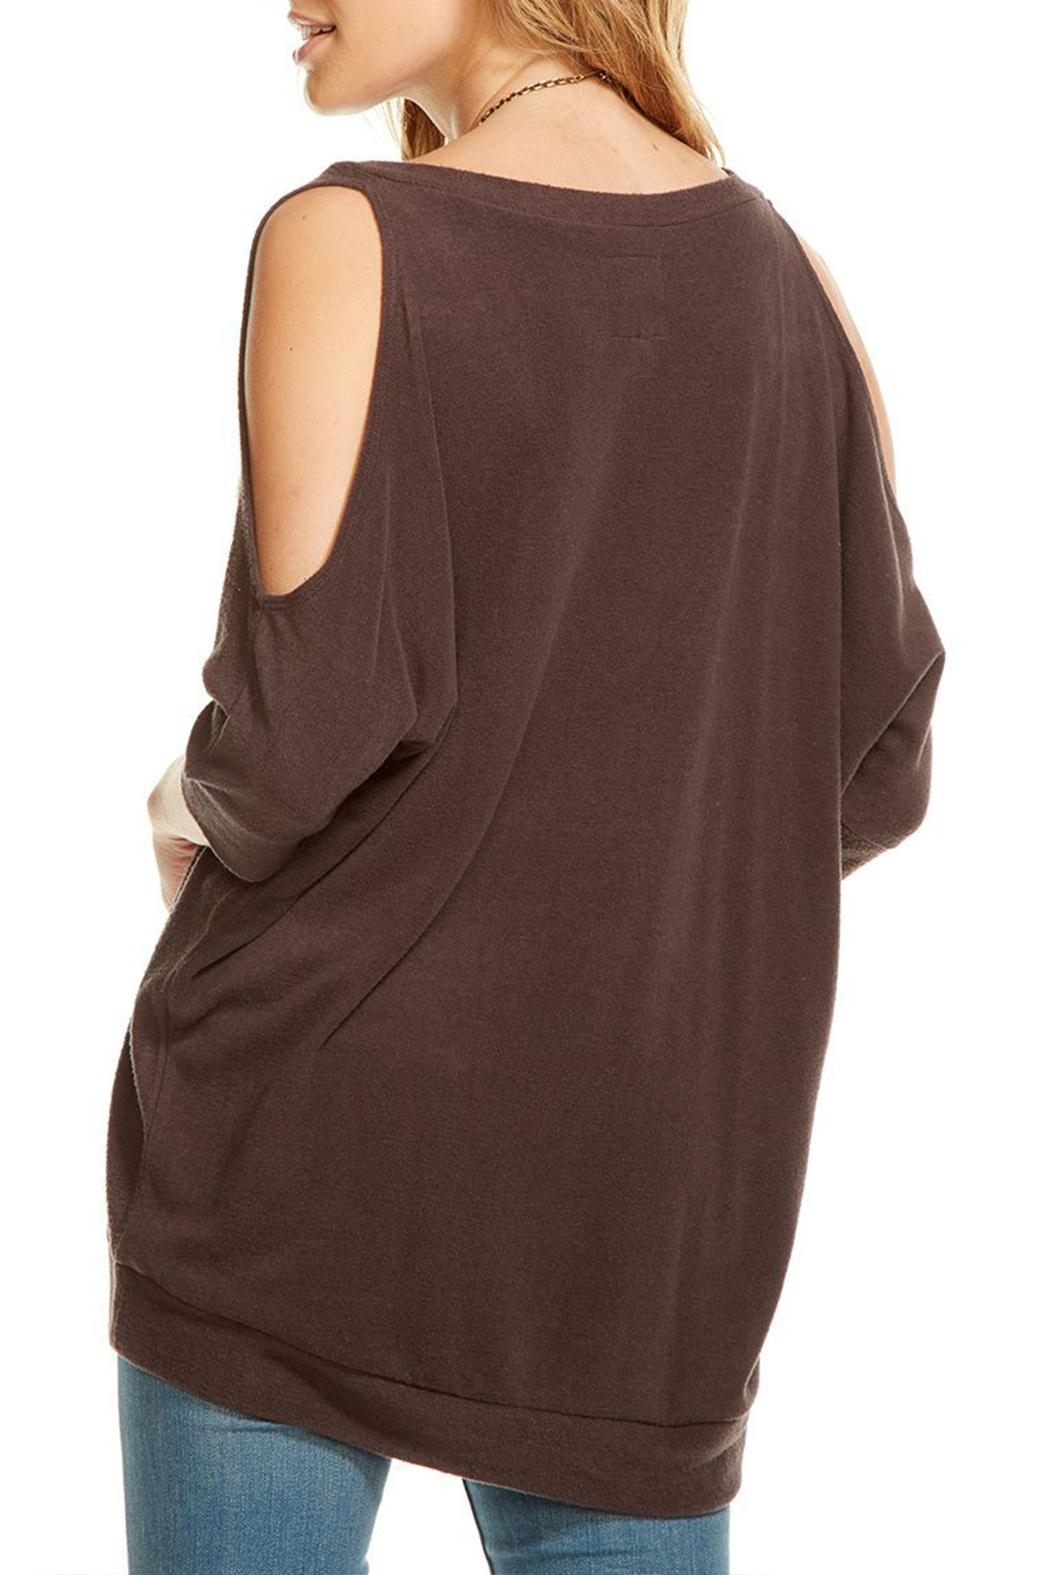 Chaser Cold Shoulder Sweater - Side Cropped Image